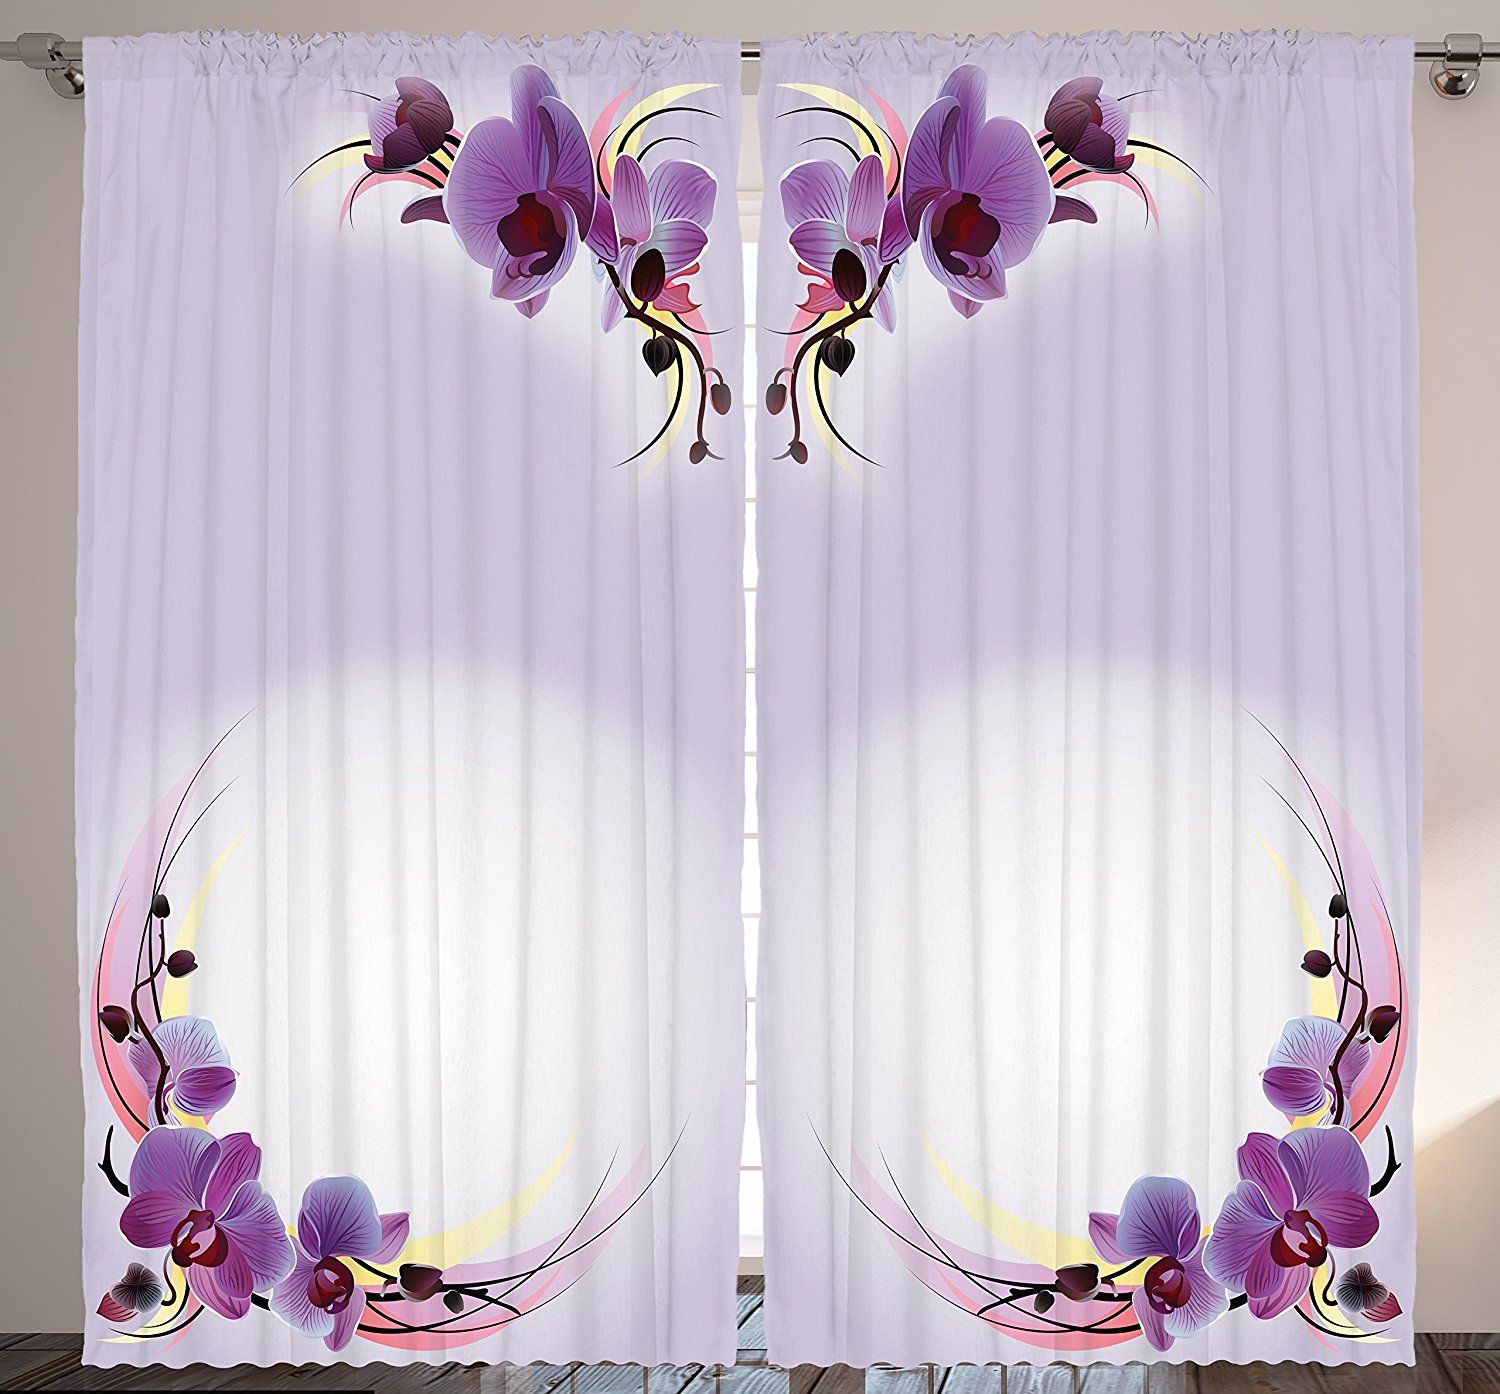 Bedroom Curtains Nature Home Decor By Ambesonne Orchid Flowers Theme Creative Design Art Print Bedroom Natural Home Decor Creative Home Decor Floral Curtains